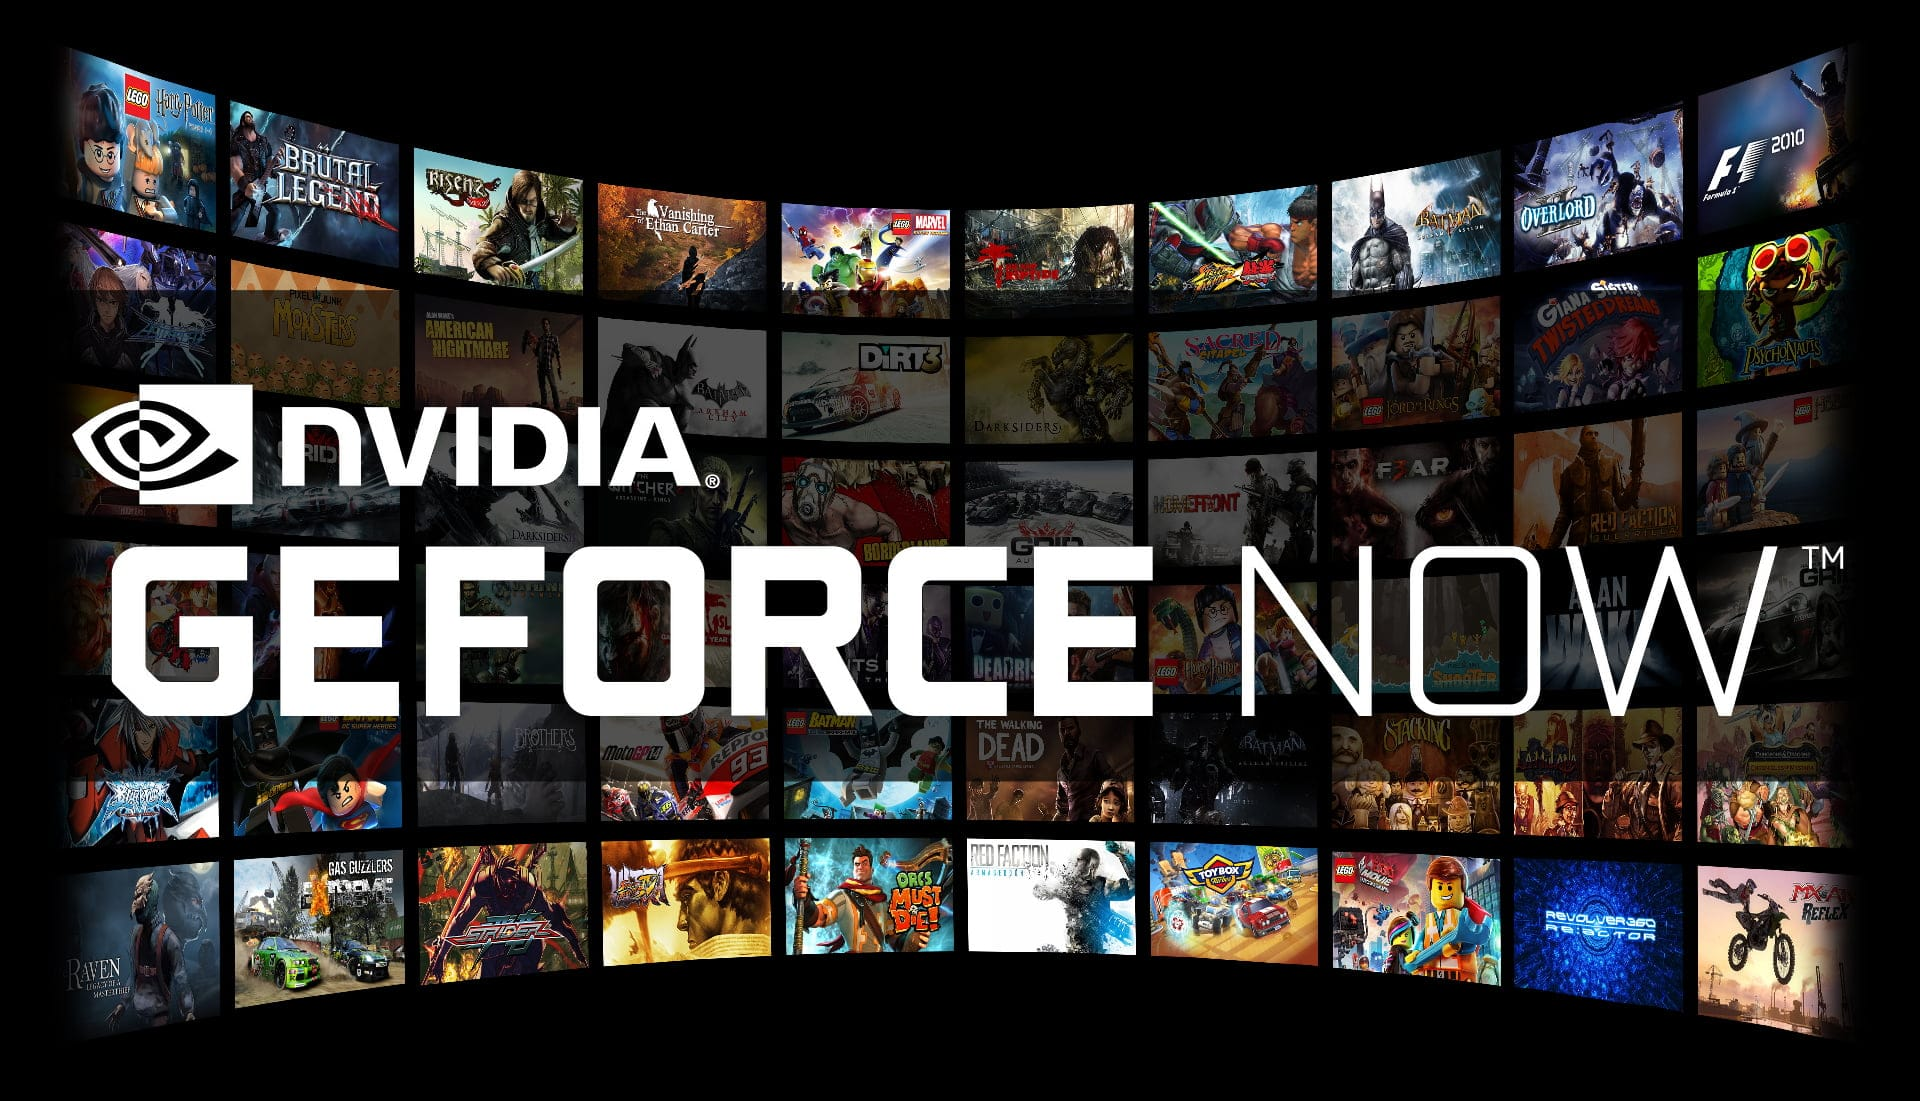 Nvida GeForce Now